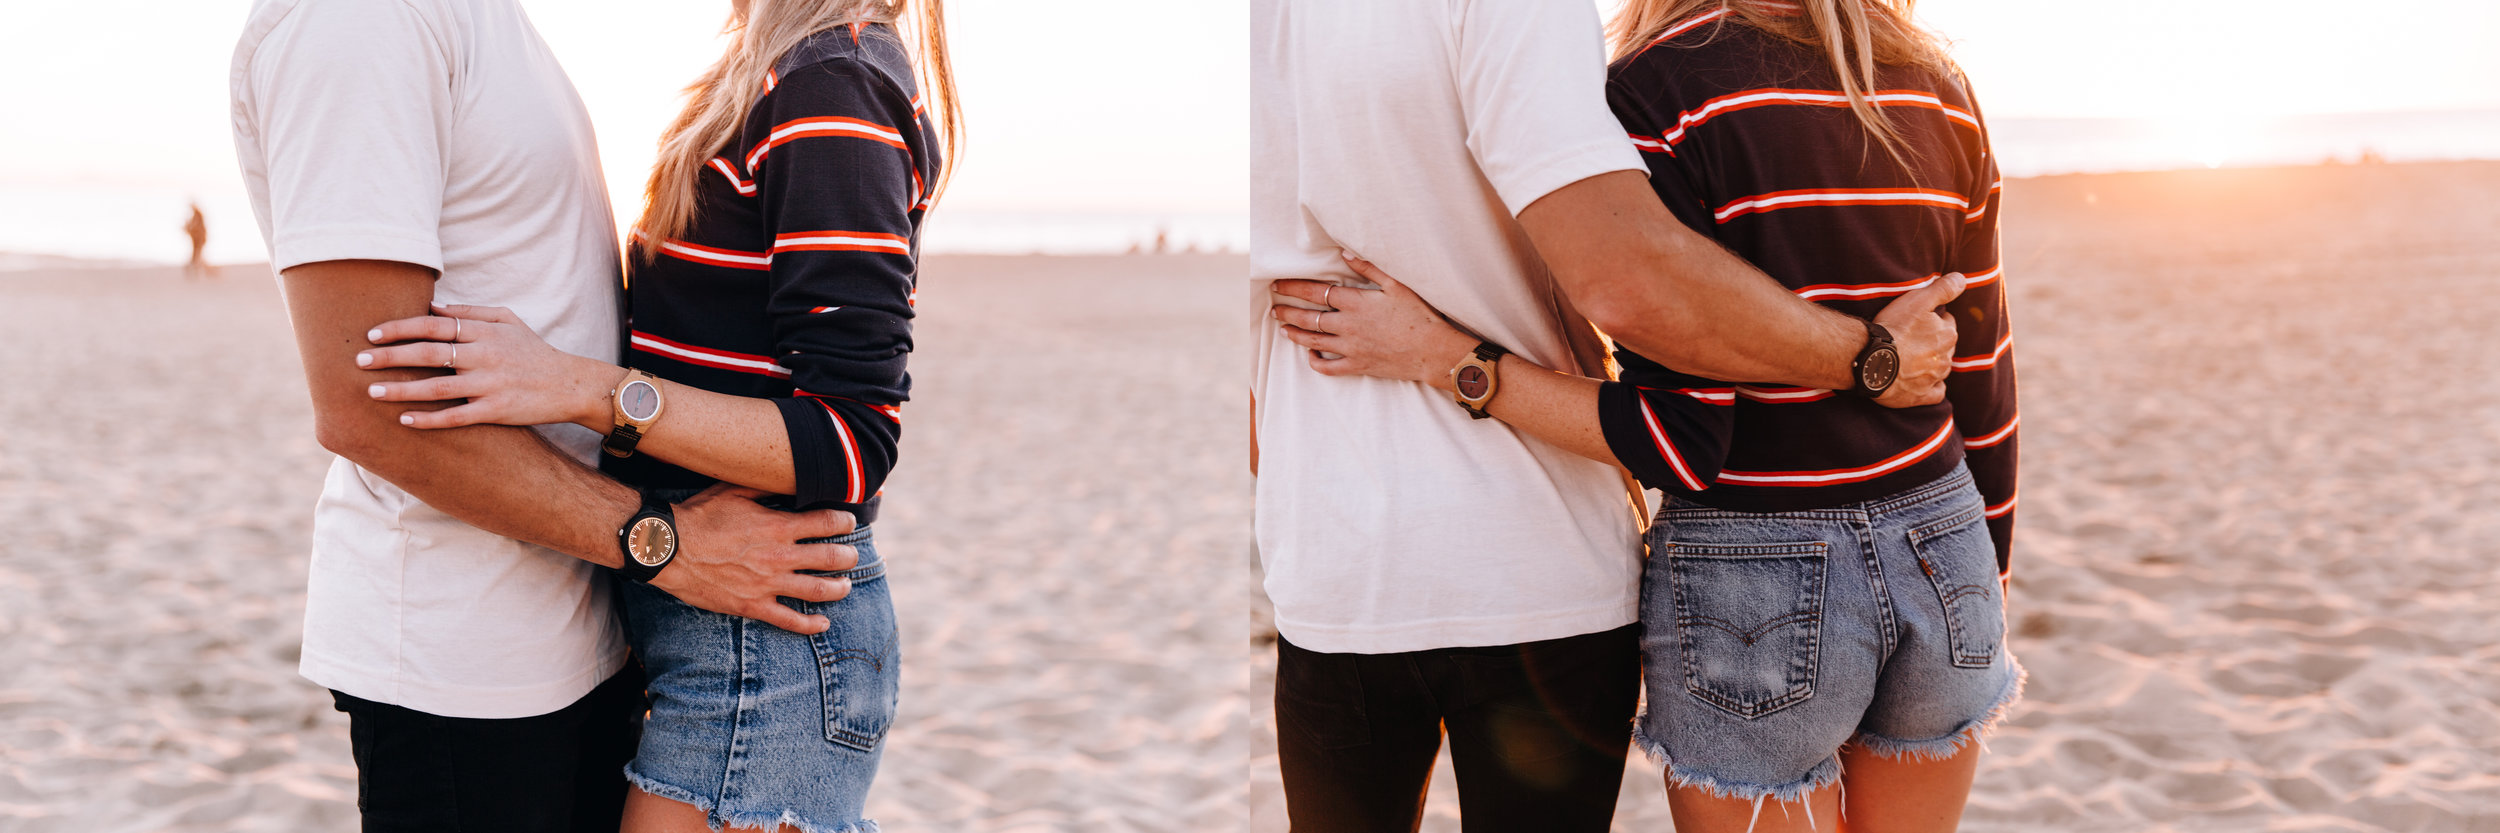 Newport Beach engagement photographer, SoCal engagement photographer, Orange County engagement photographer, Southern California engagement photographer, Newport Beach engagement session, Treehutco